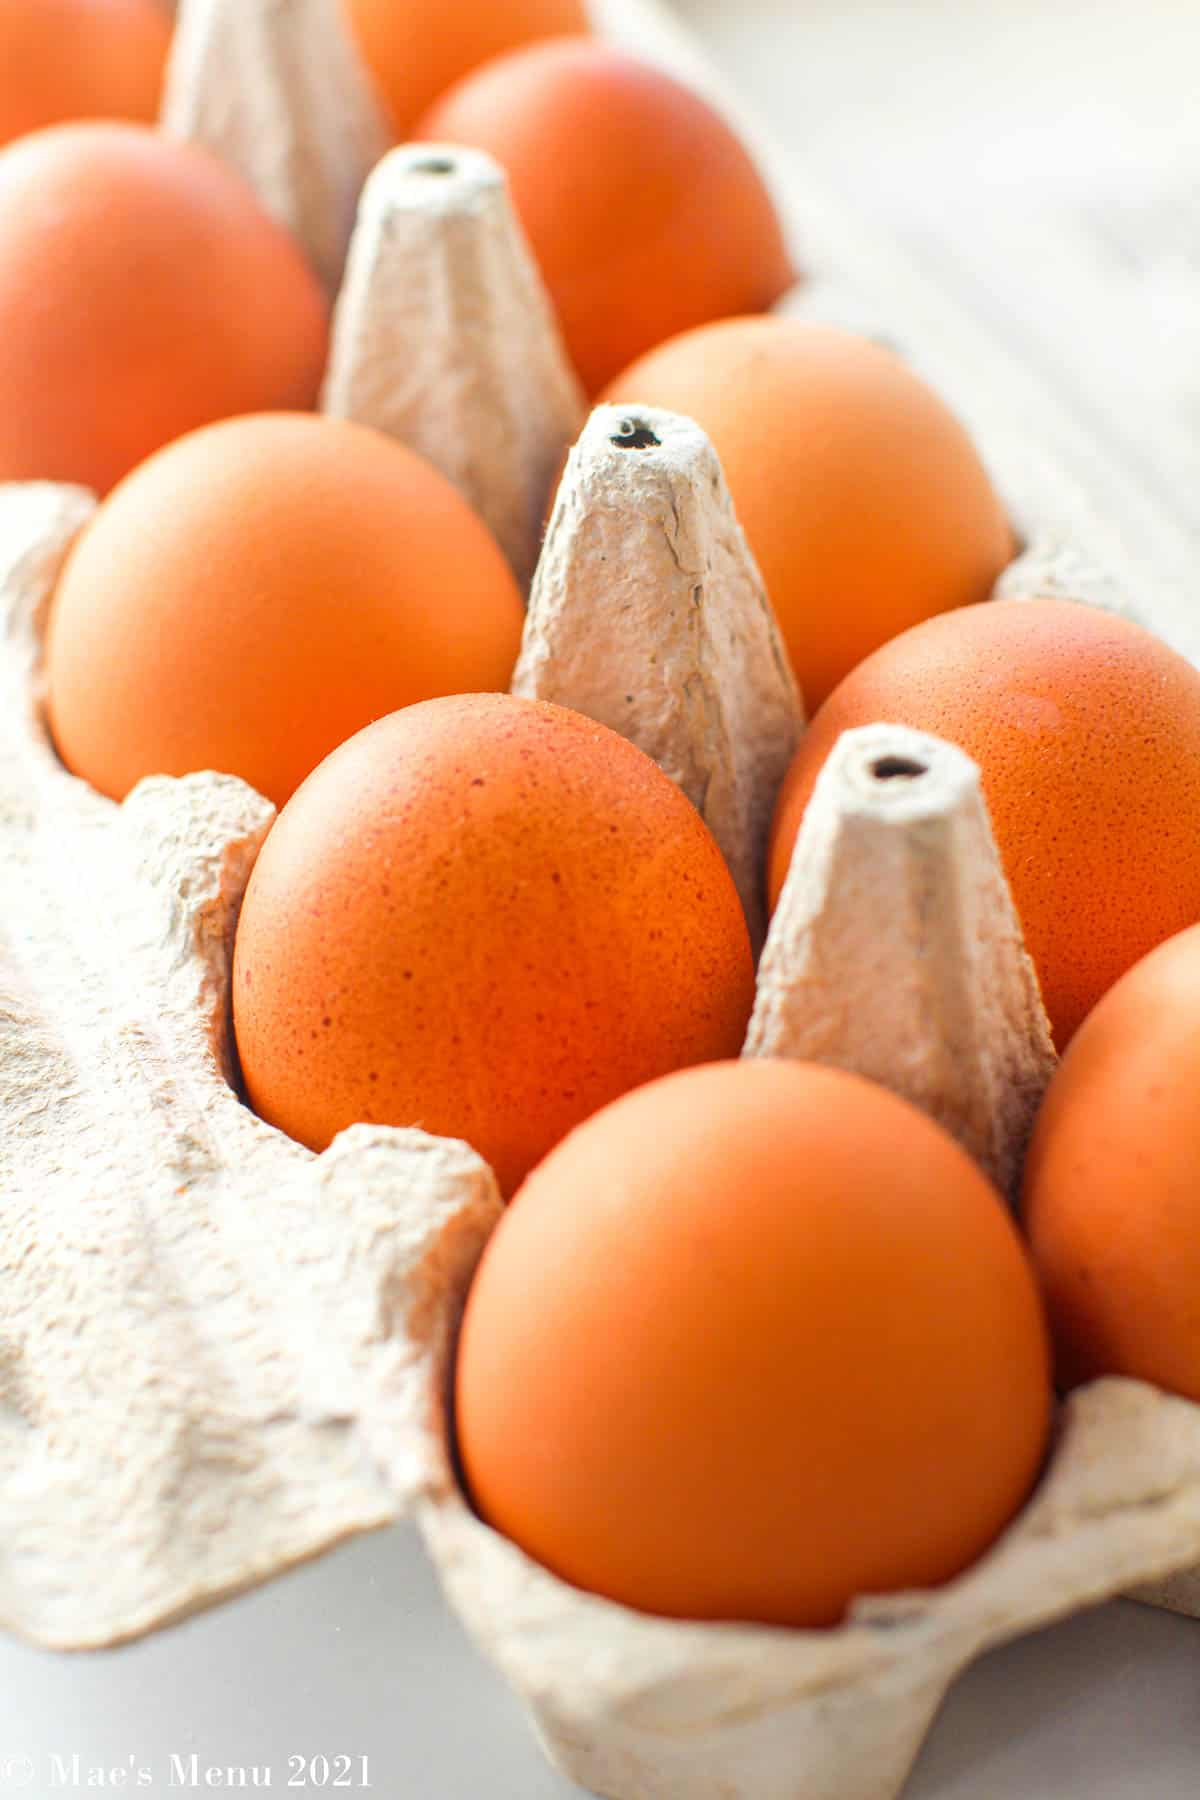 A side angle shot of a crate of eggs